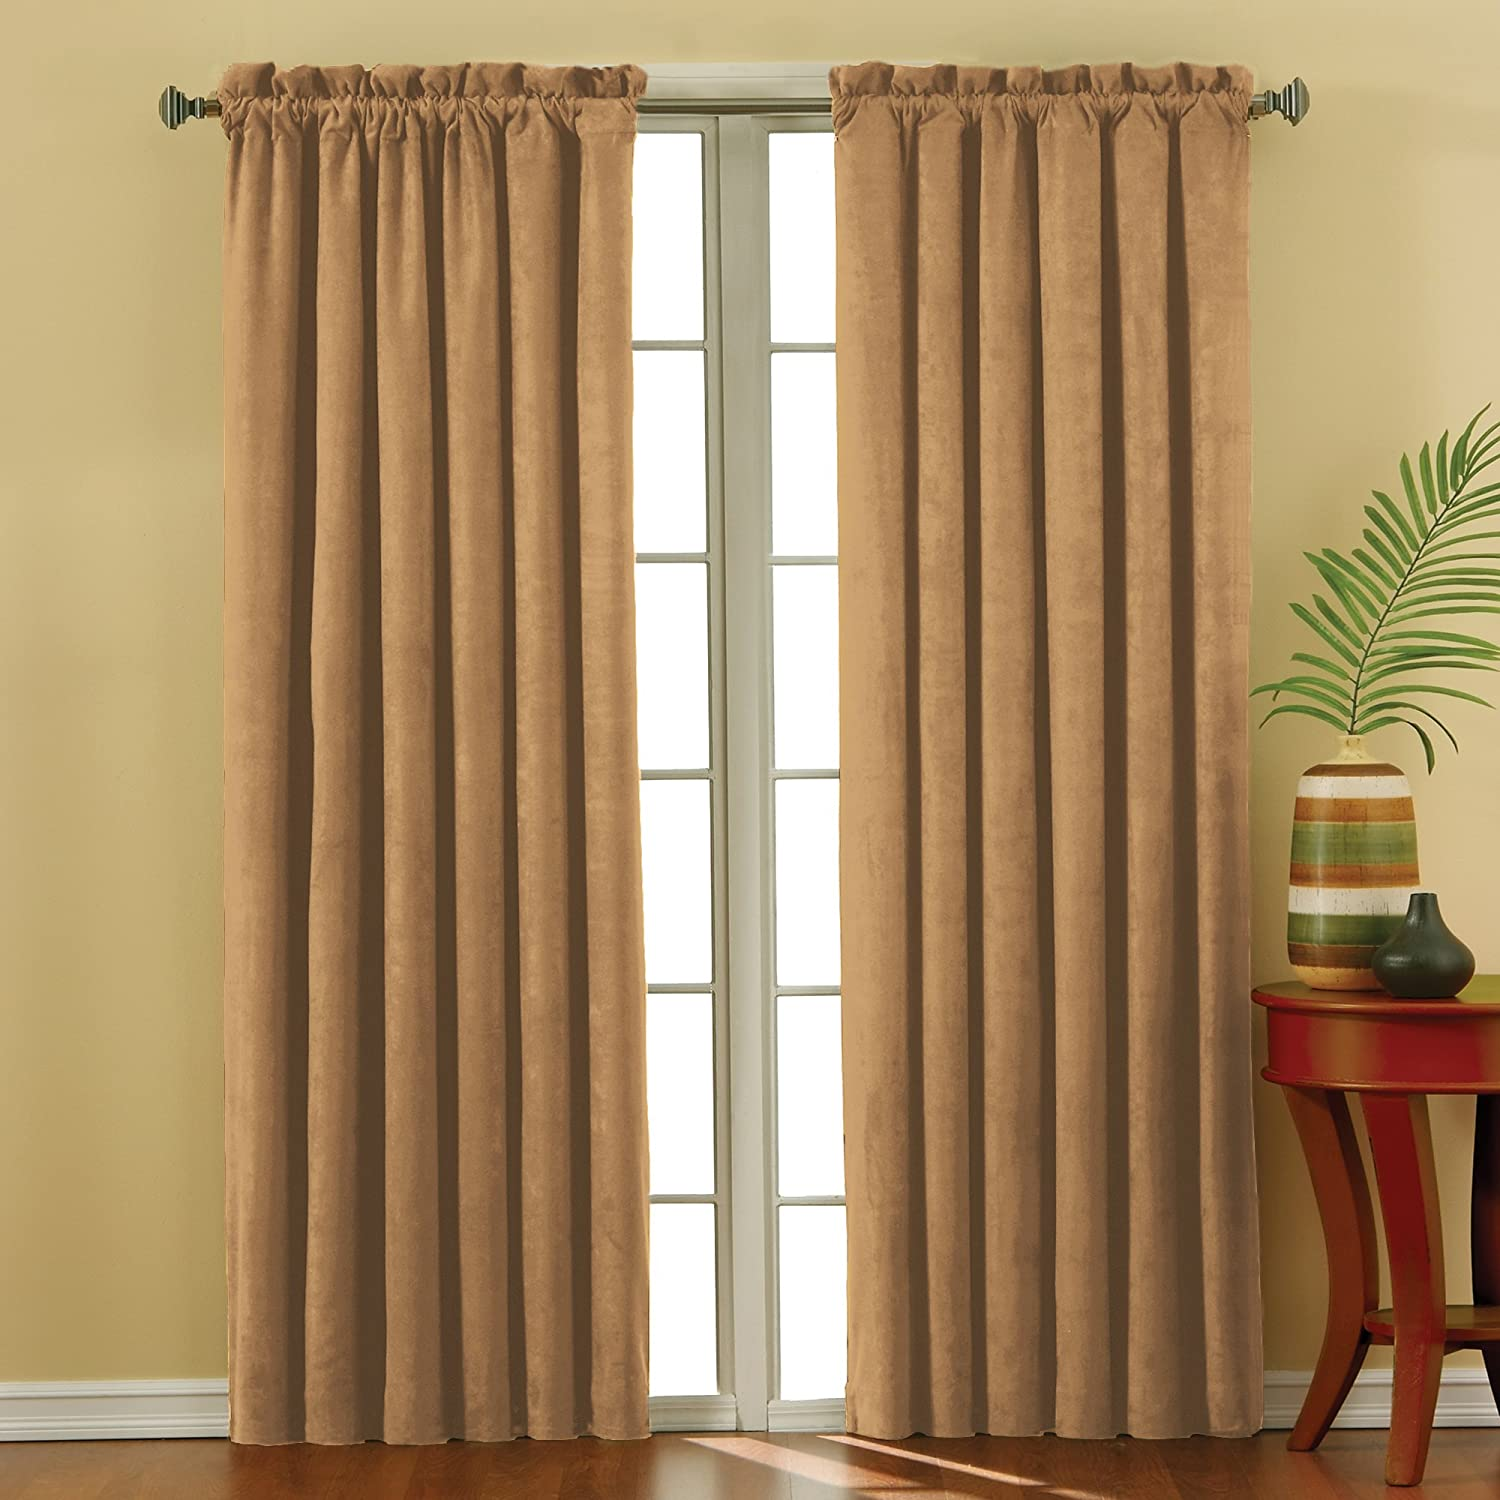 for curtains window refinement black benefit sophisticated blackout